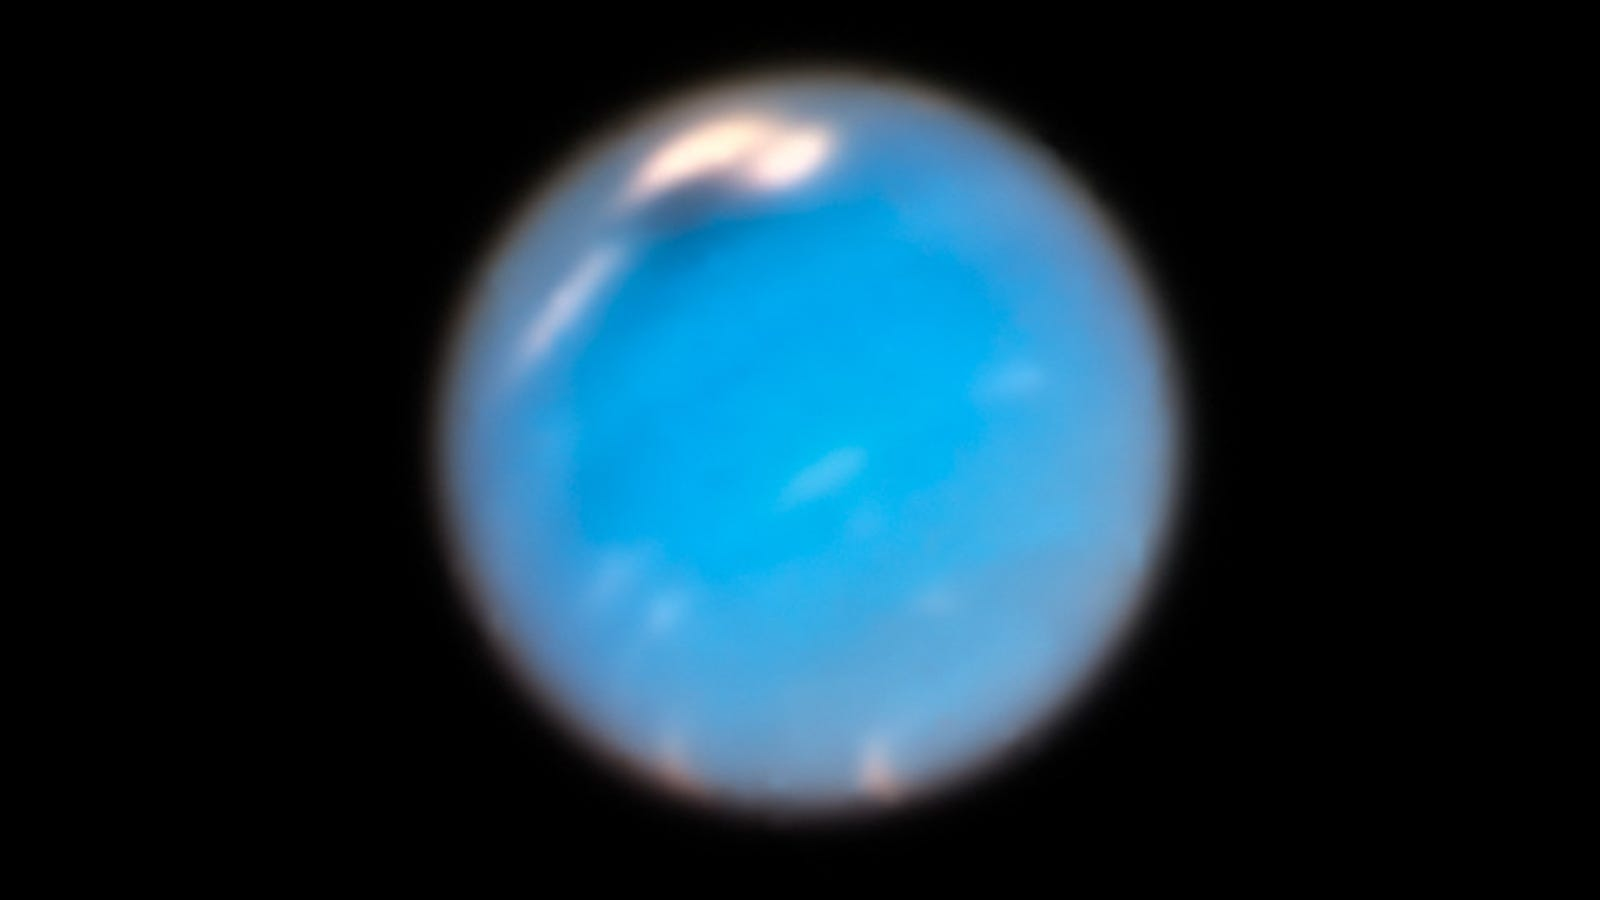 Formation of Dark Vortex on Neptune Captured For the Very First Time - Gizmodo